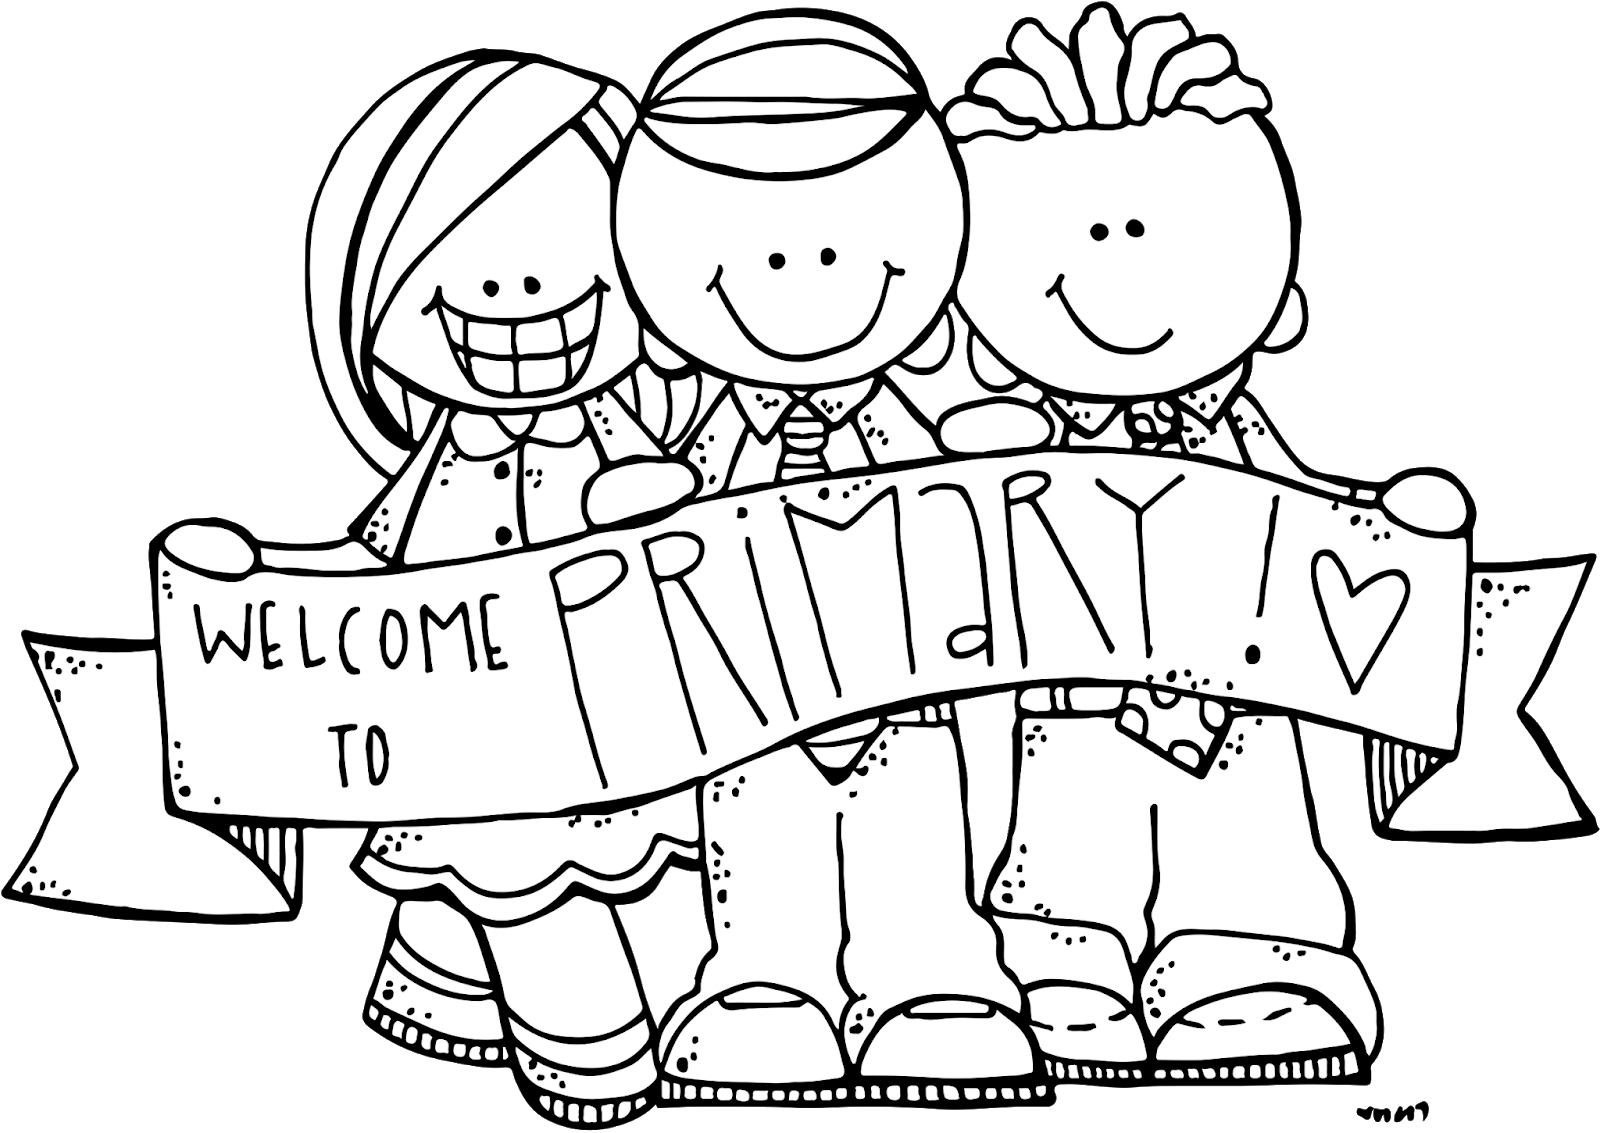 Ye Shall Meet Together Oft 3 Nephi 18 22 I Taught Primary For A Bit A Few Years Ago All The Good Stuff Happens In P Free Clip Art Clip Art Coloring Pages